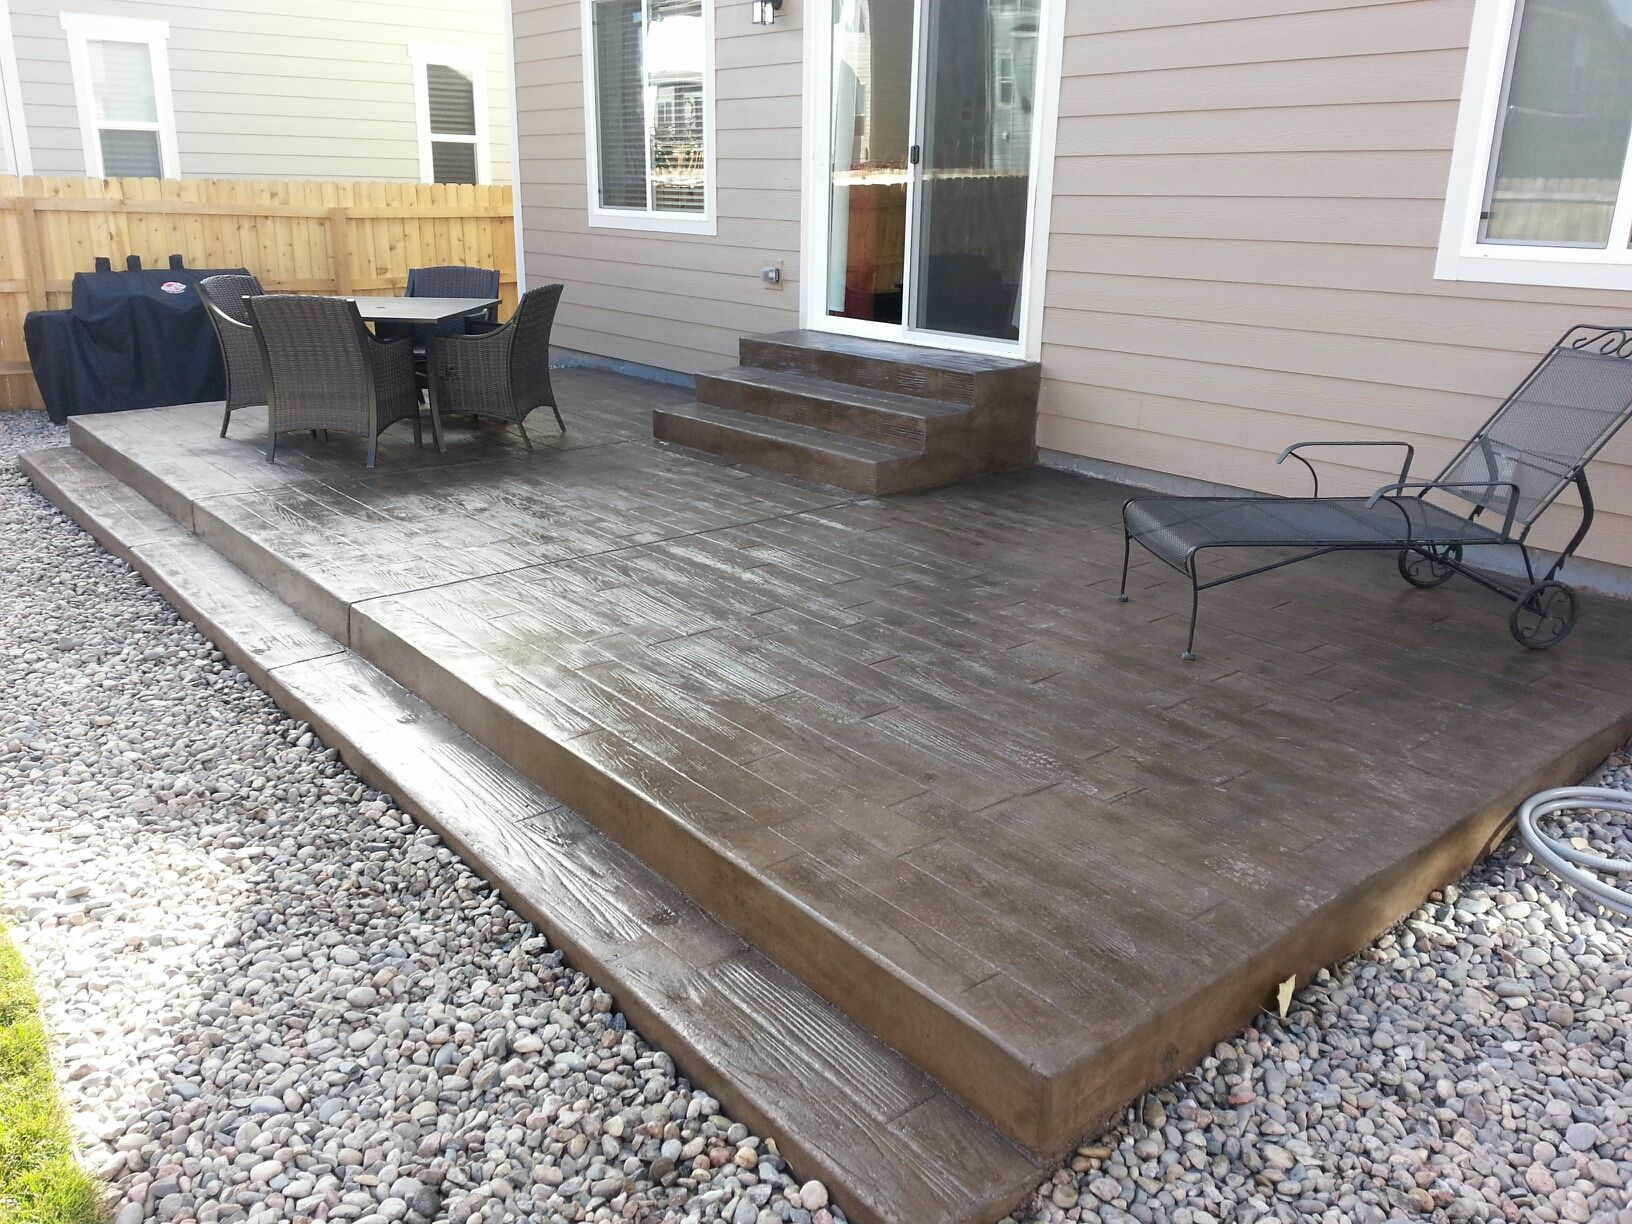 Wood Grain Texture Stamped Concrete Patio U0026 Steps